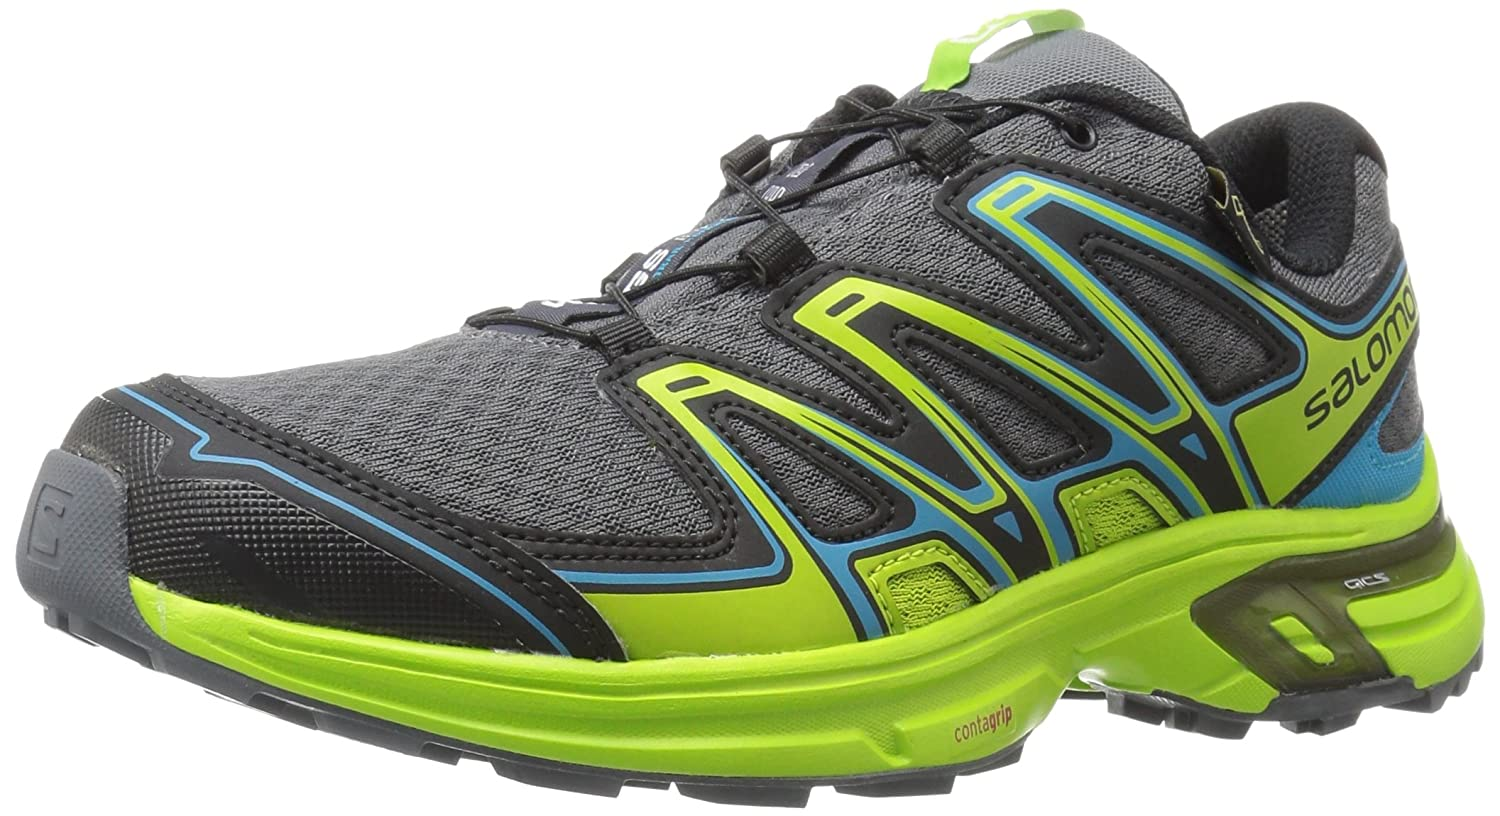 Salomon L39030300, Zapatillas de Trail Running para Hombre 42 EU|Gris (Dark Cloud / Granny Green / Scuba Blue)